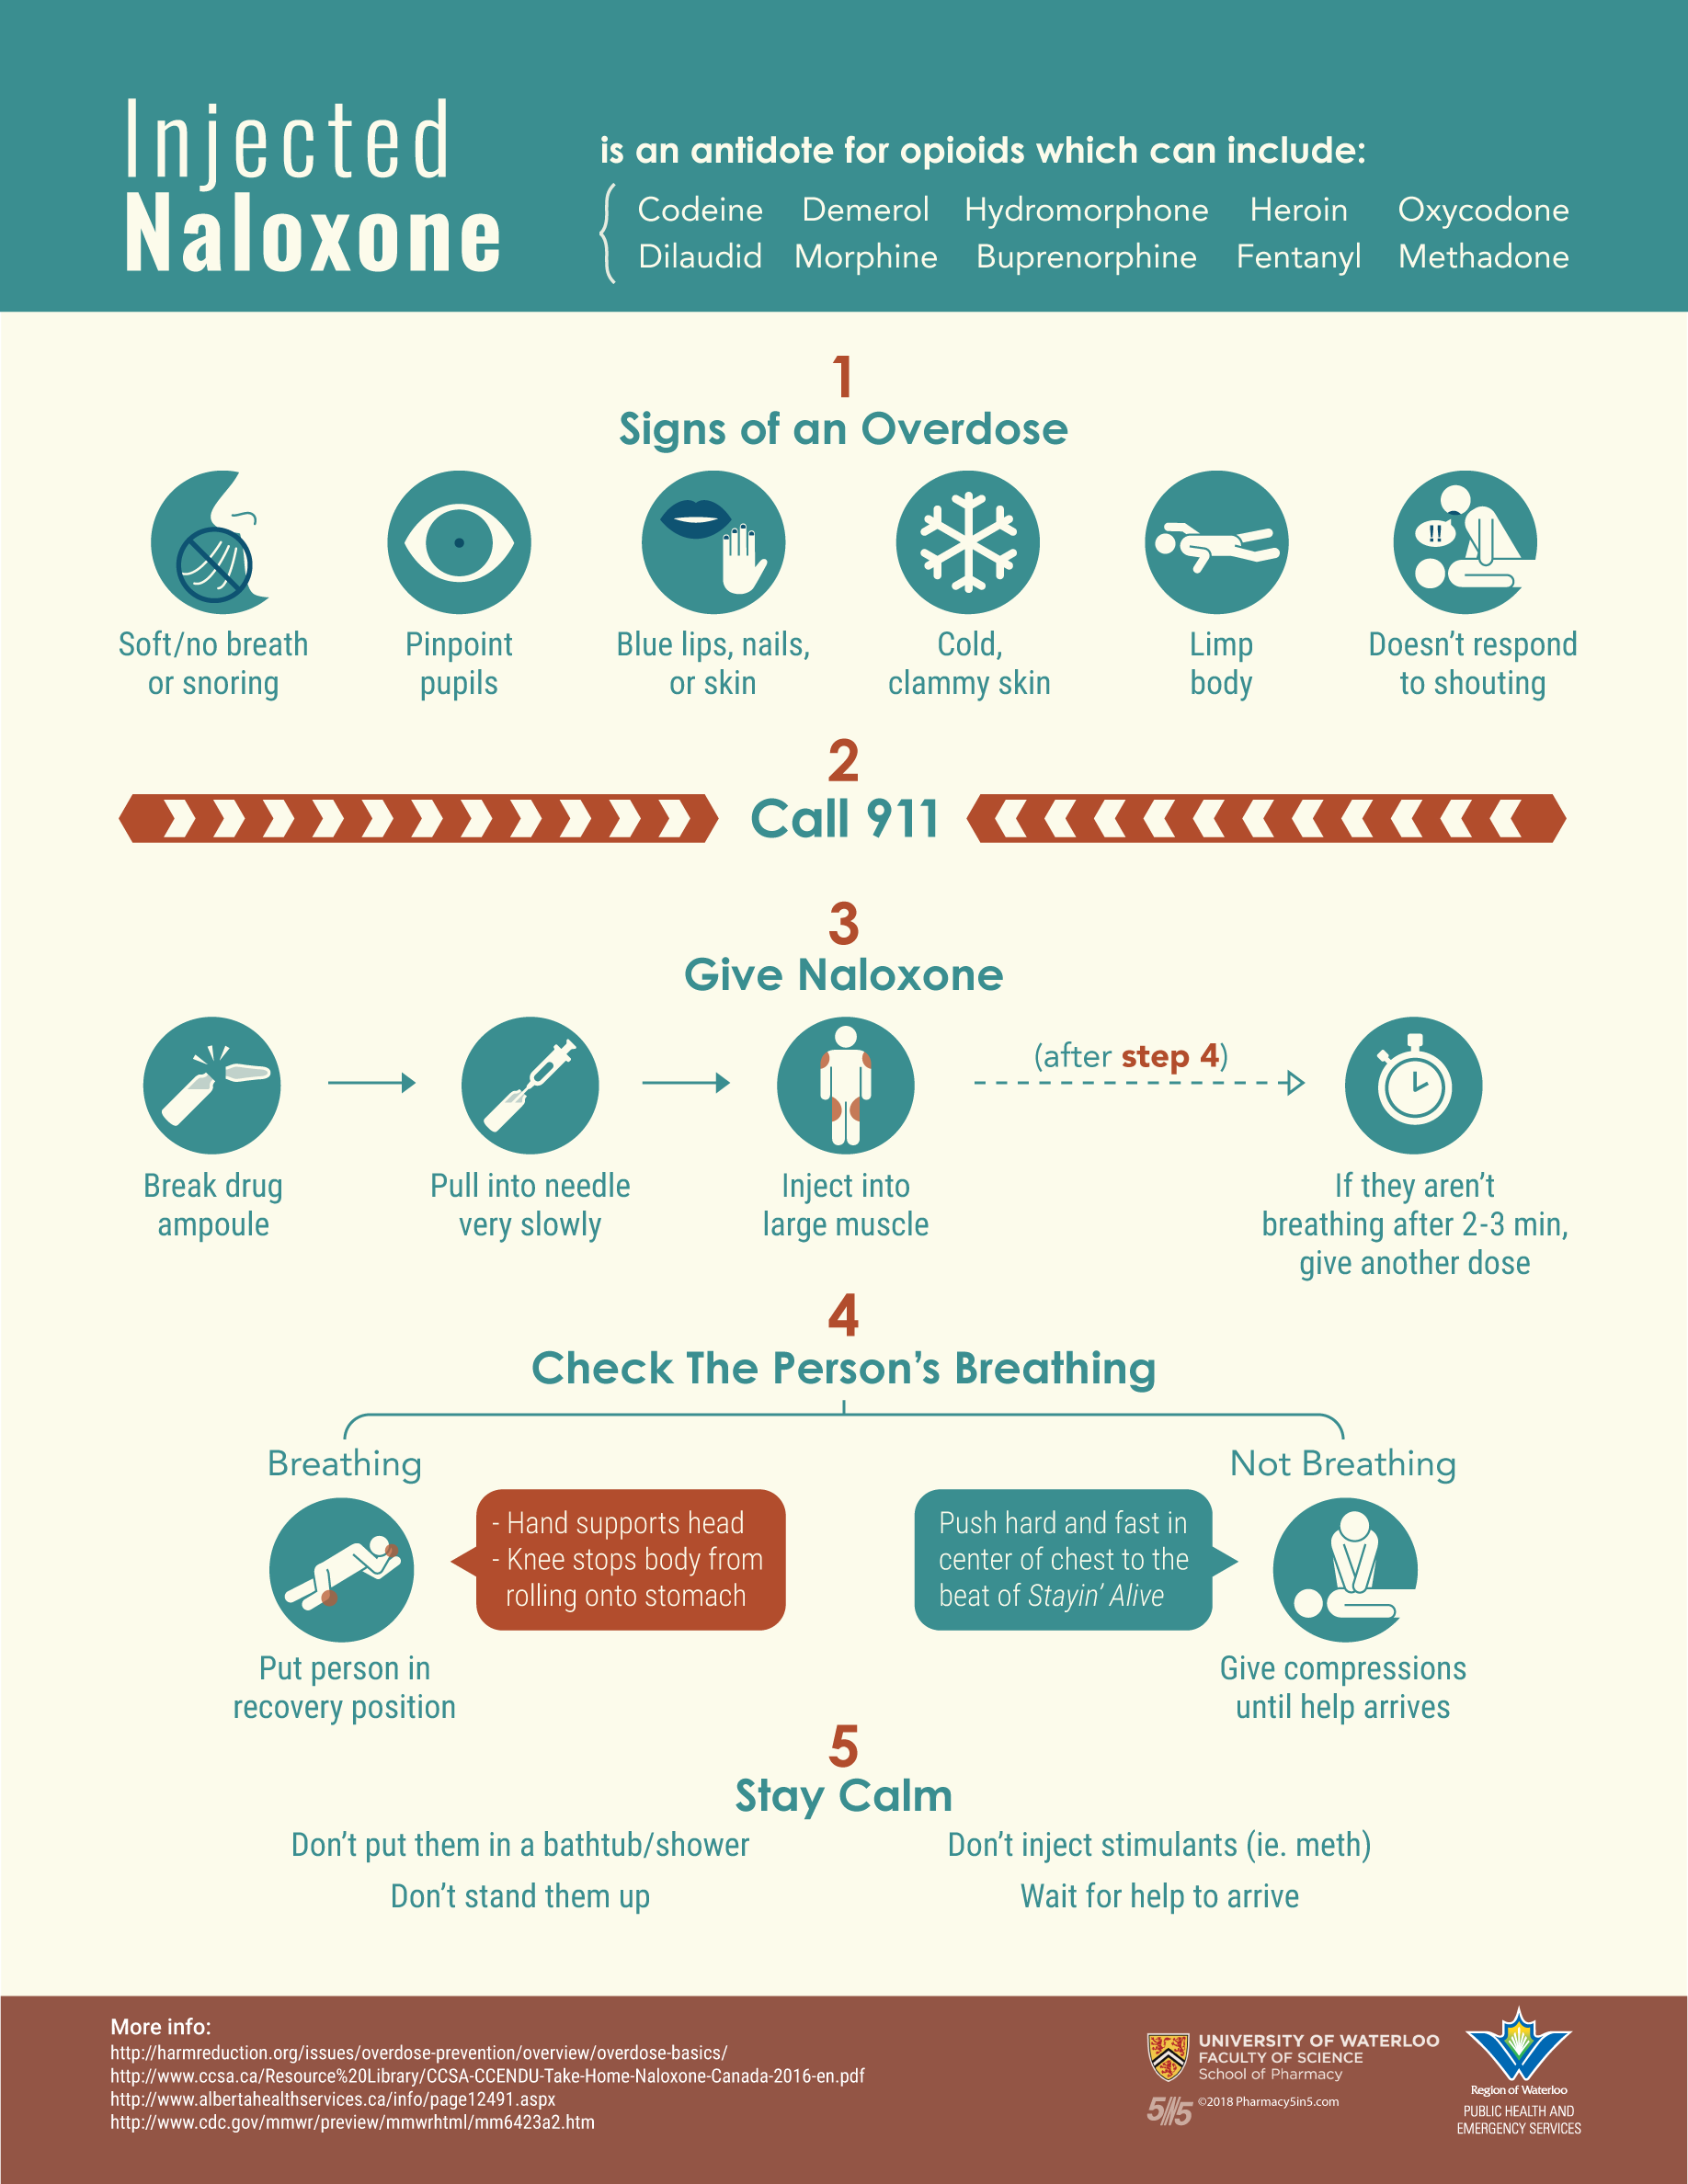 Download a PDF of the COLOUR Naloxone Inj Infographic    Download a PDF of the BLACK & WHITE Naloxone Inj Infographic